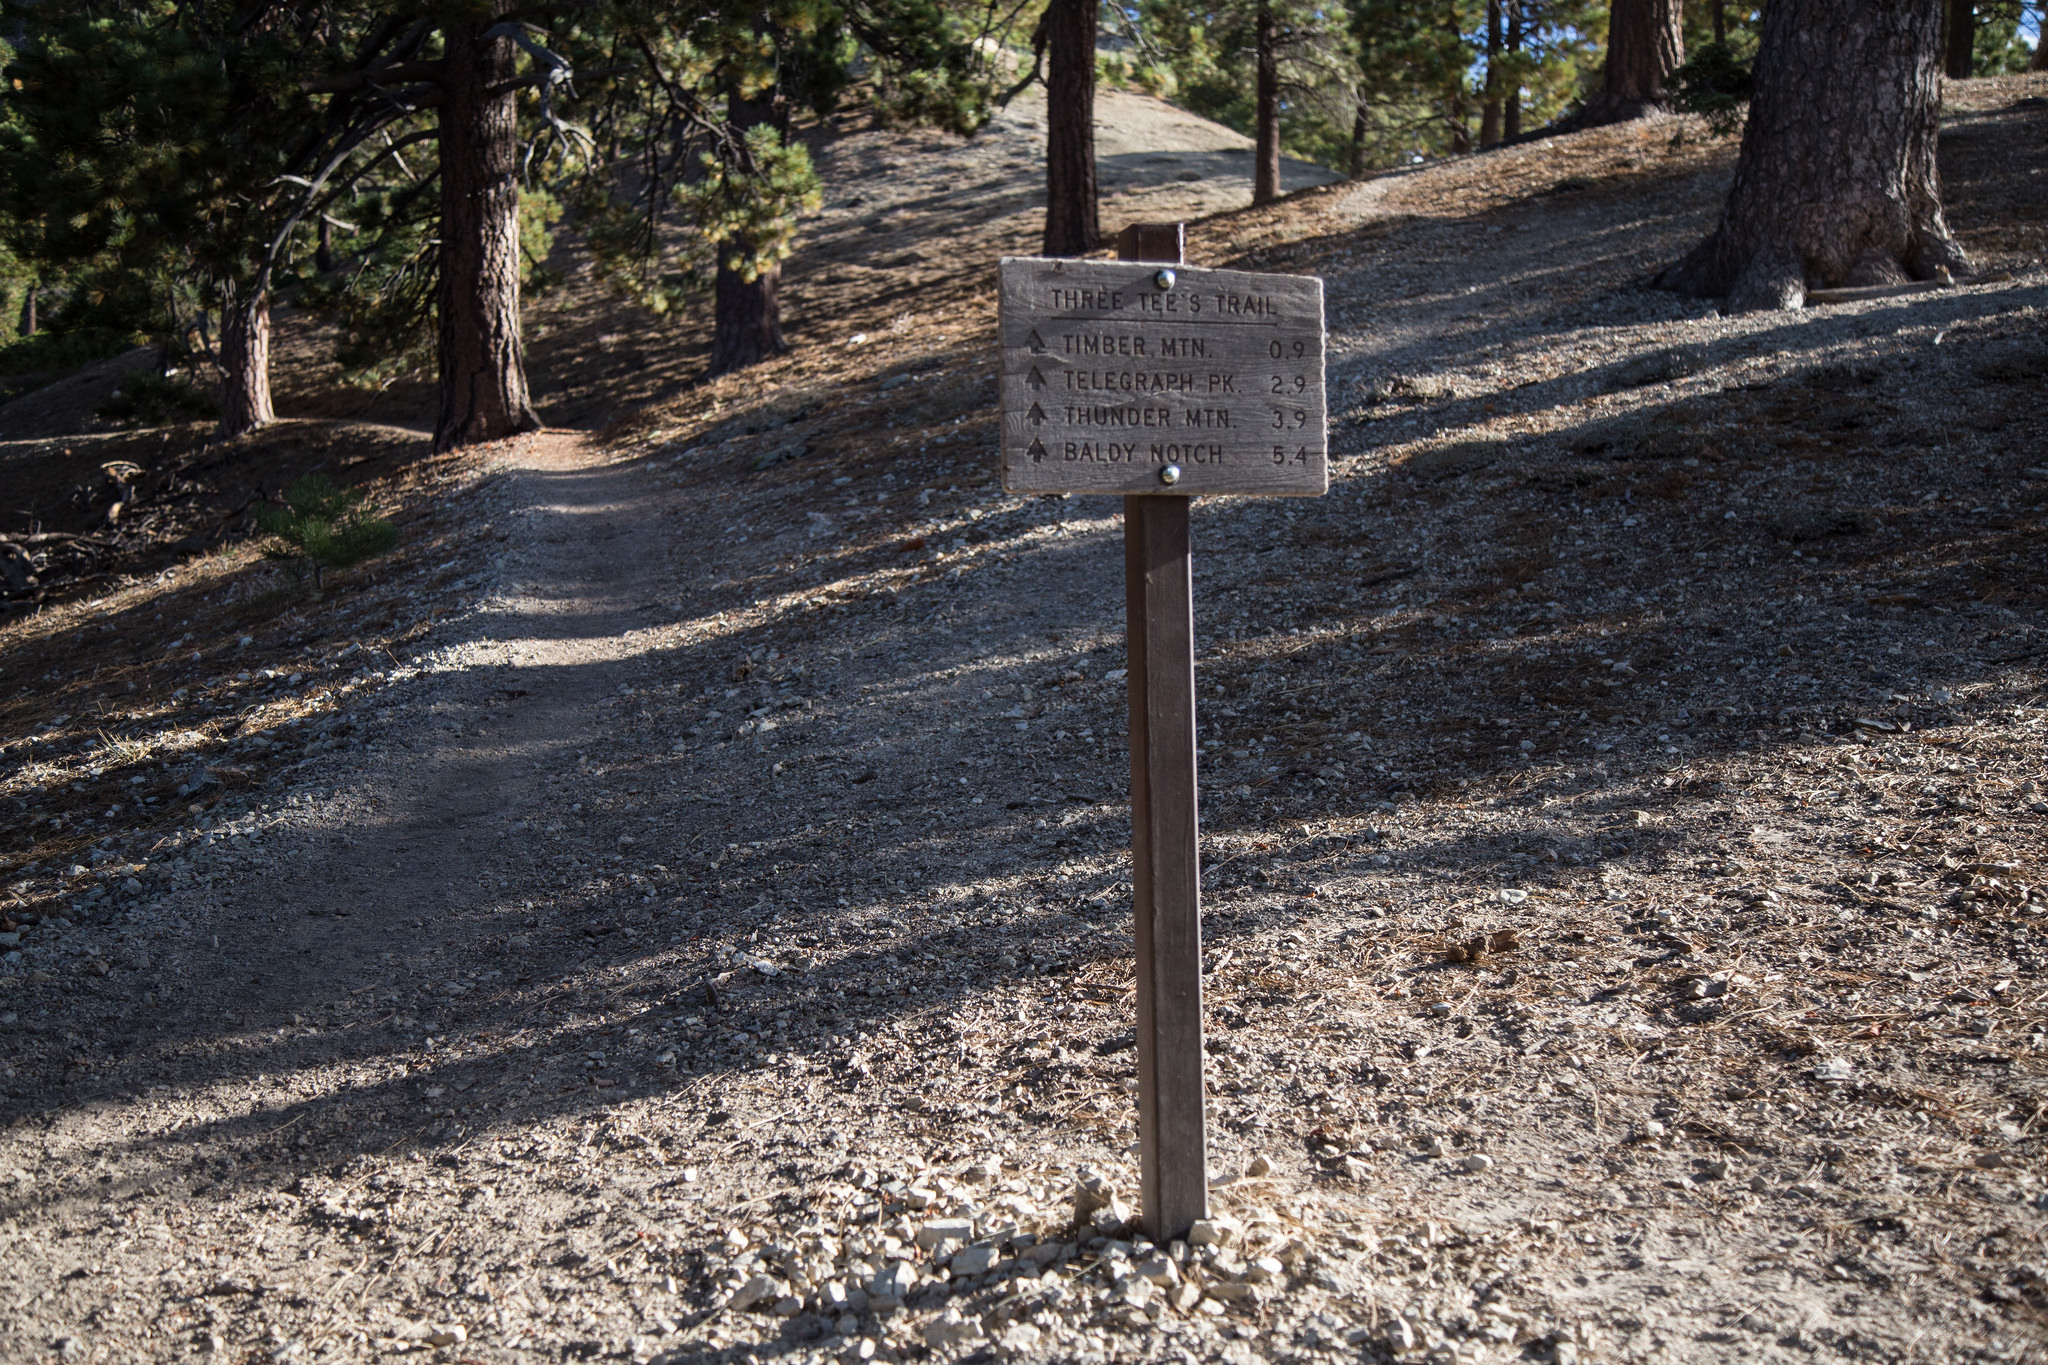 And the next climb on the Three Tee's Trail to Timber Mountain. You can also summit Telegraph and Thunder but we stuck to just the one for today. We have to work up to all three!